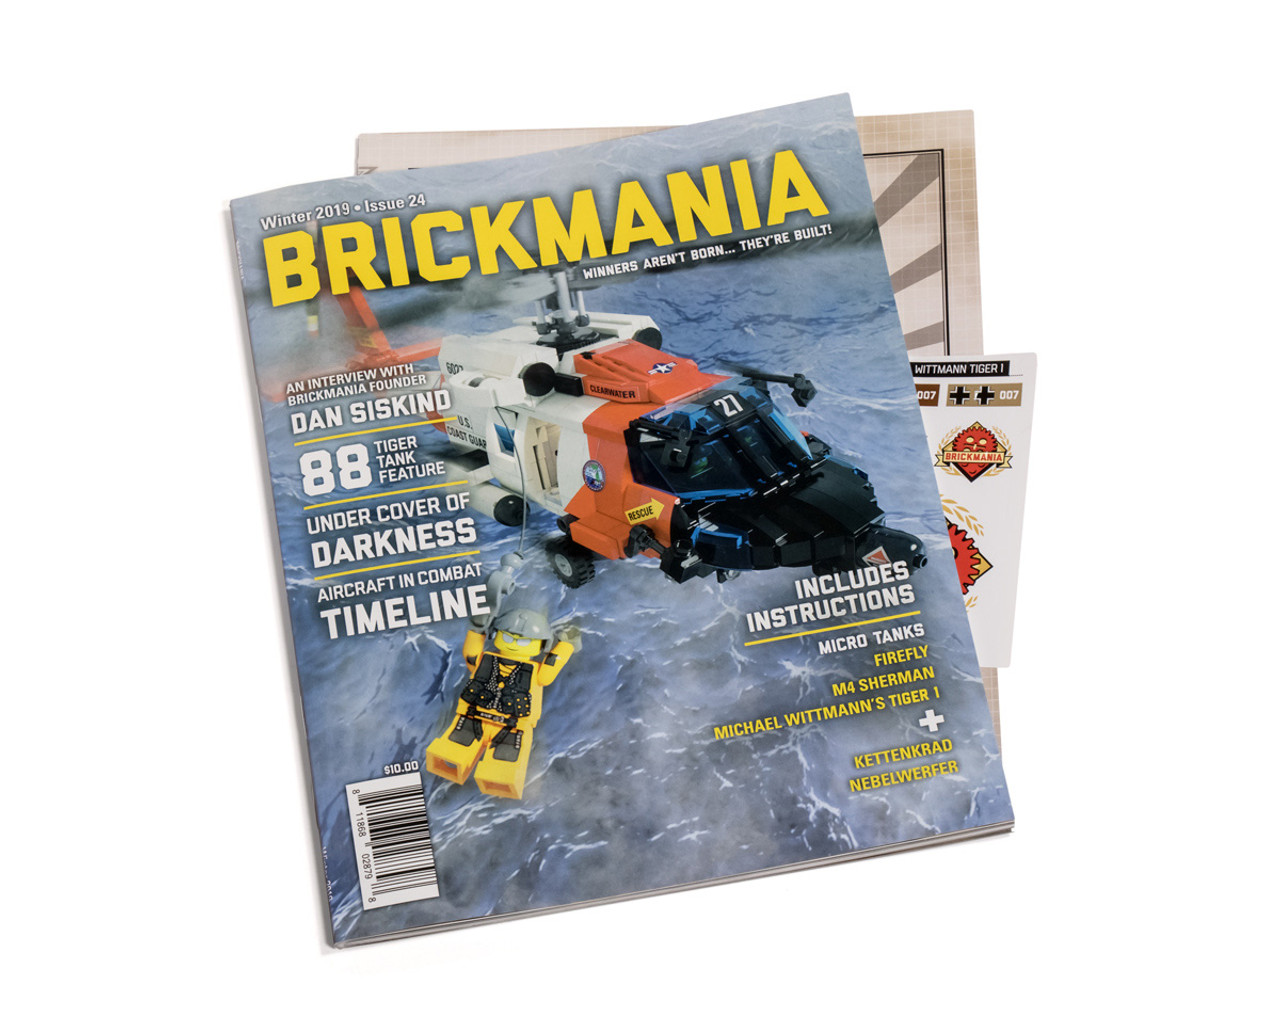 Brickmania Magazine Issue #24 Winter 2019